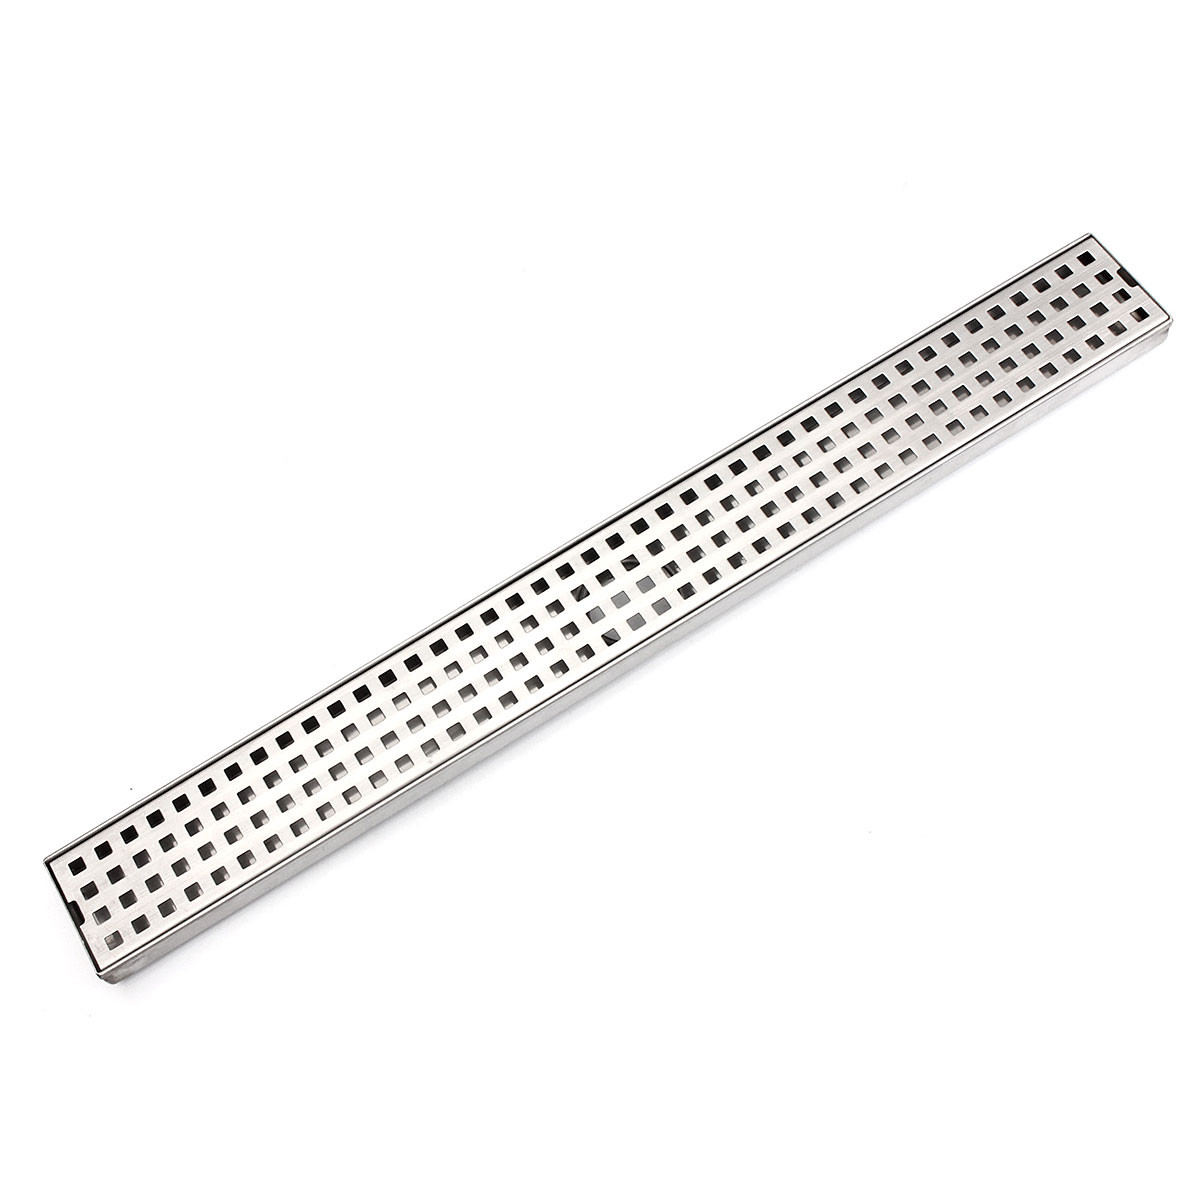 600*68*22mm Stainless Steel Bathroom Shower Floor Drain Grates Waste Linear Tile Insert Long Drainer Floor Drain free shipping bathroom shower floor drain oil rubbed bronze grate waste drain lucky finishes